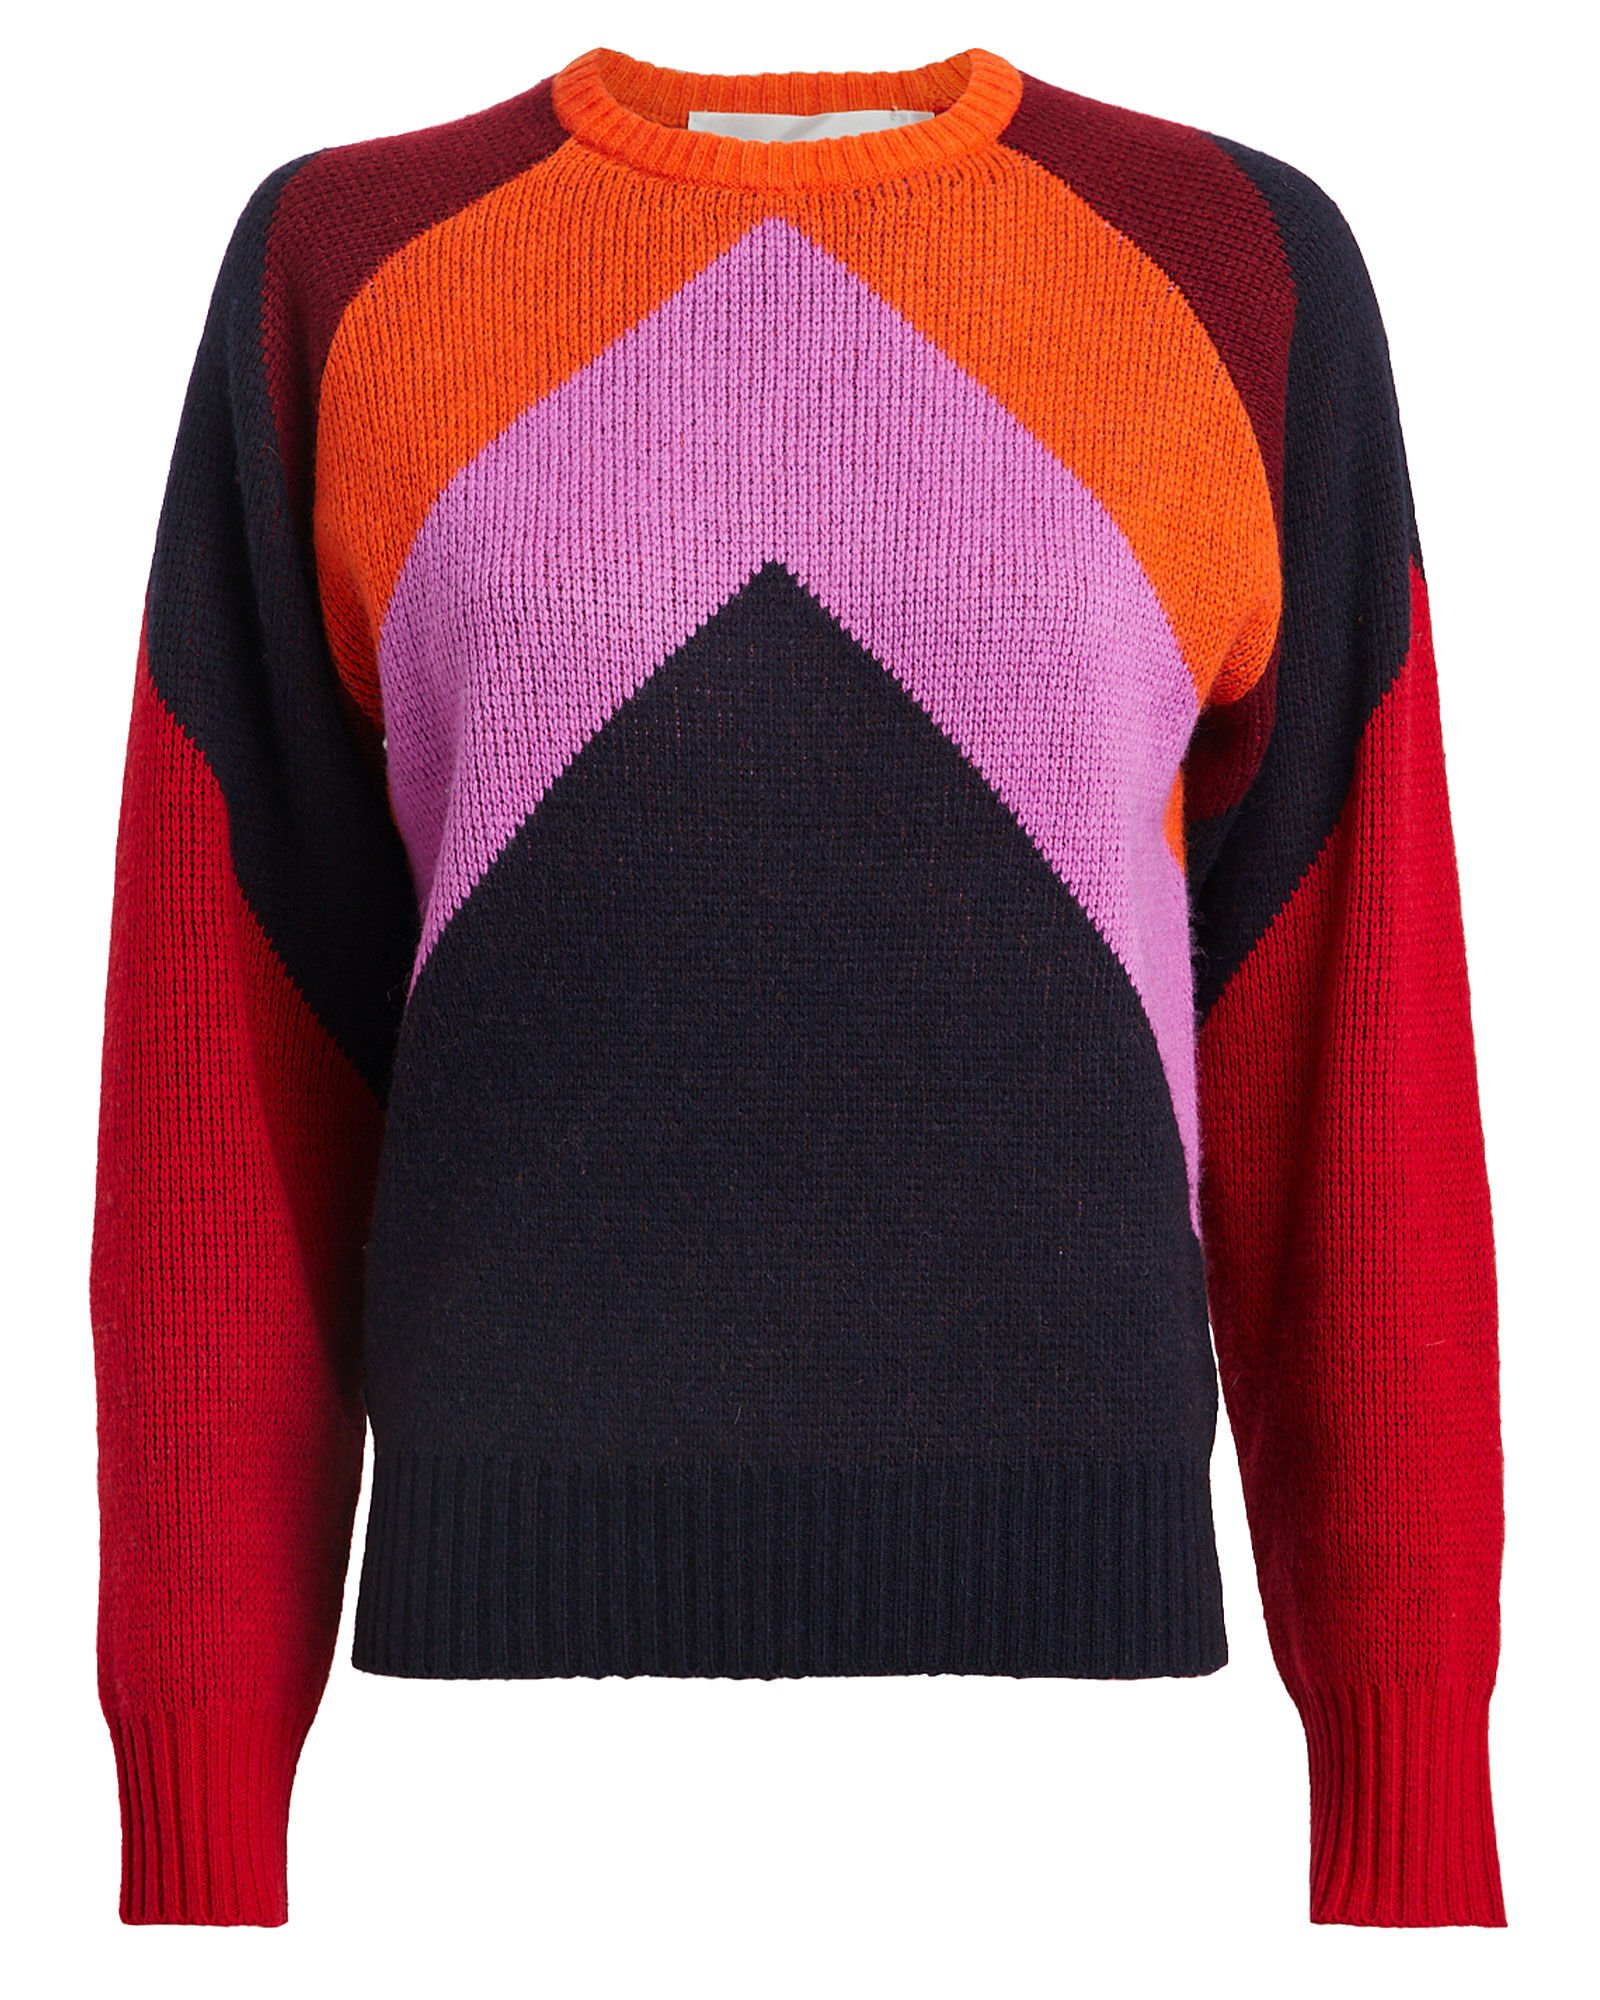 VB Chevron Knit